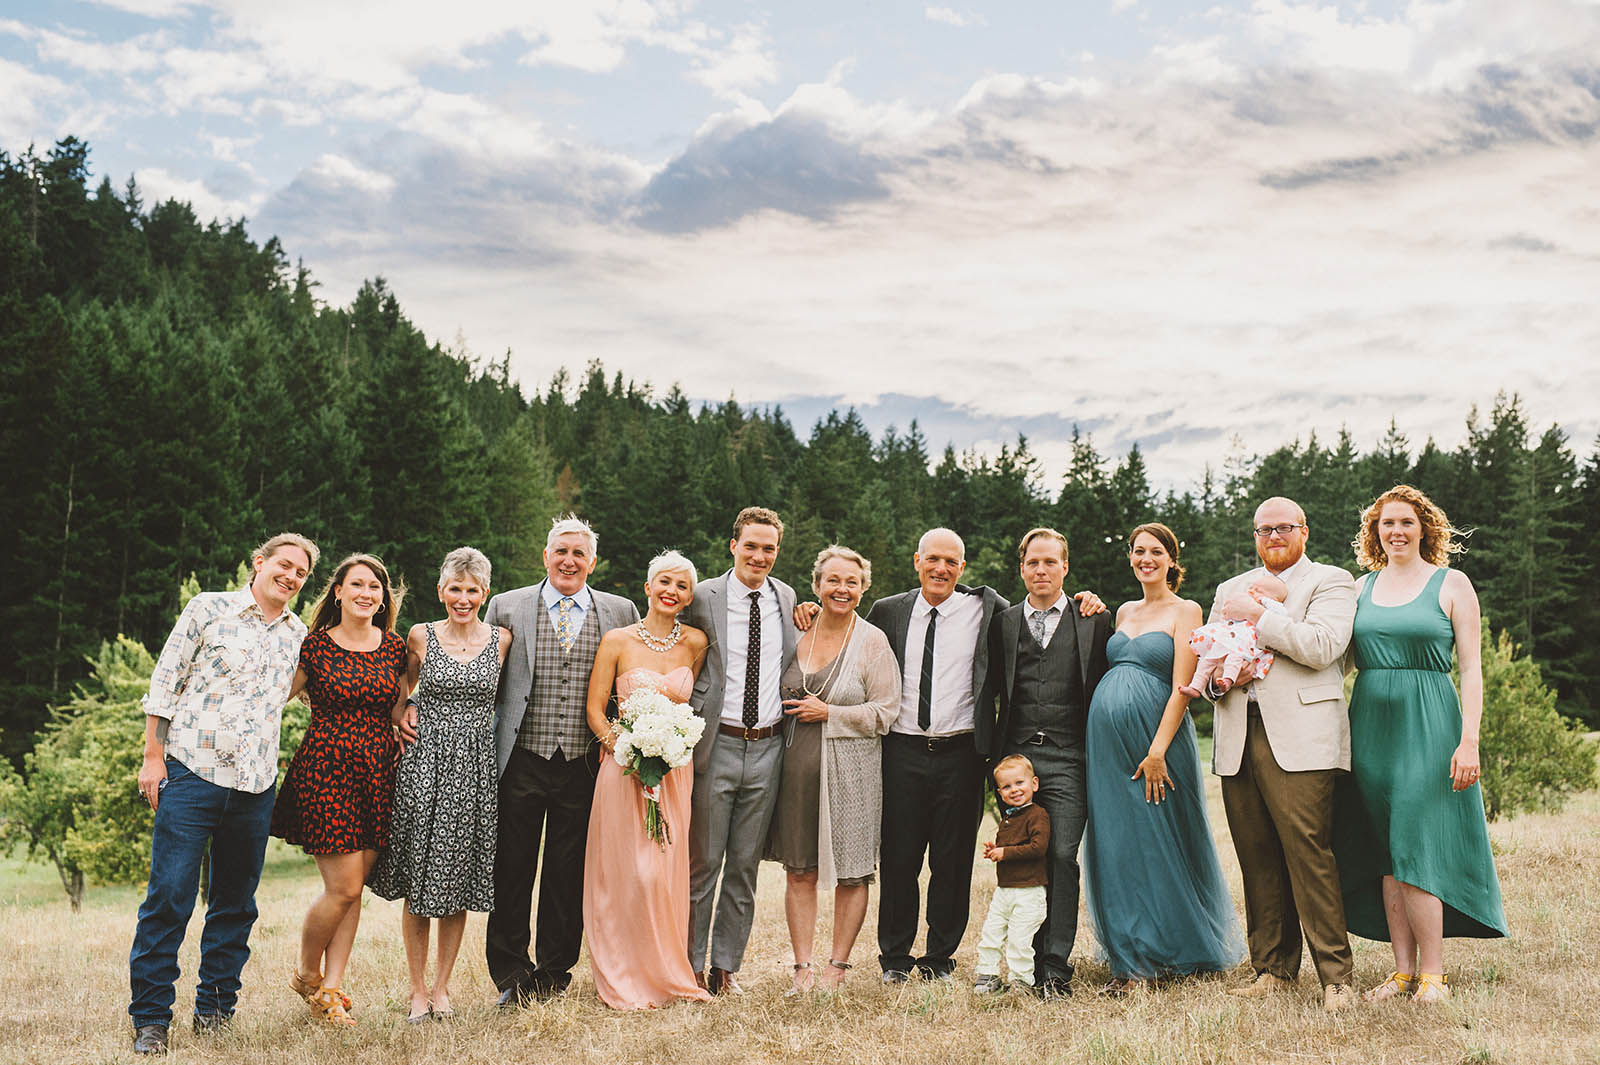 Orcas Island wedding - family portraits at Camp Kramer